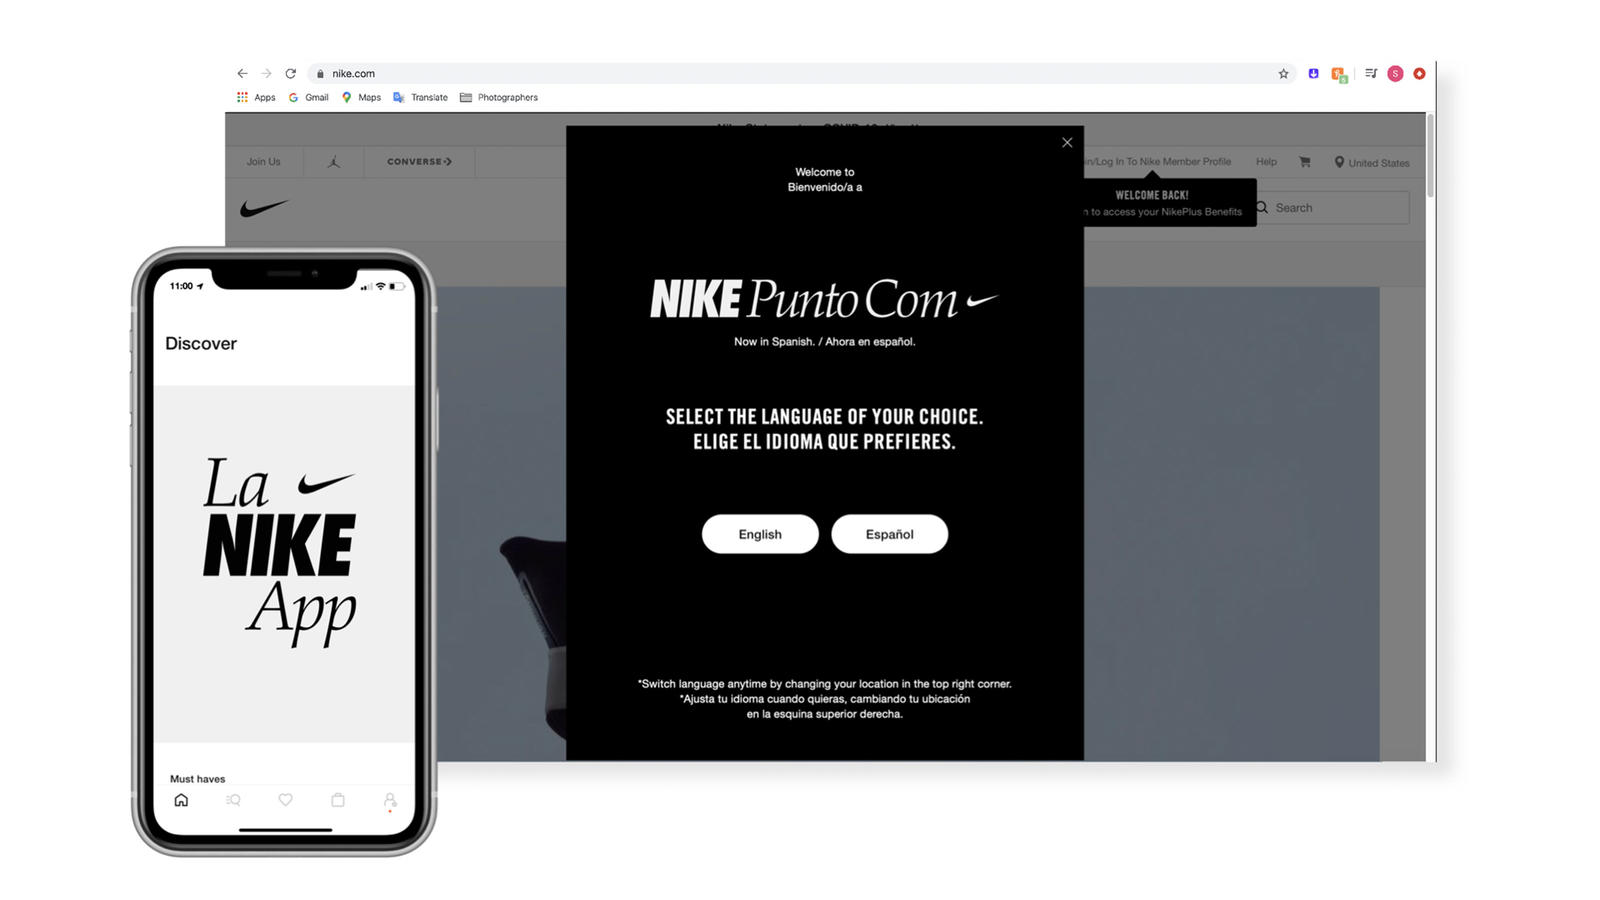 nike.com-nike-app-spanish-language-option-united-states